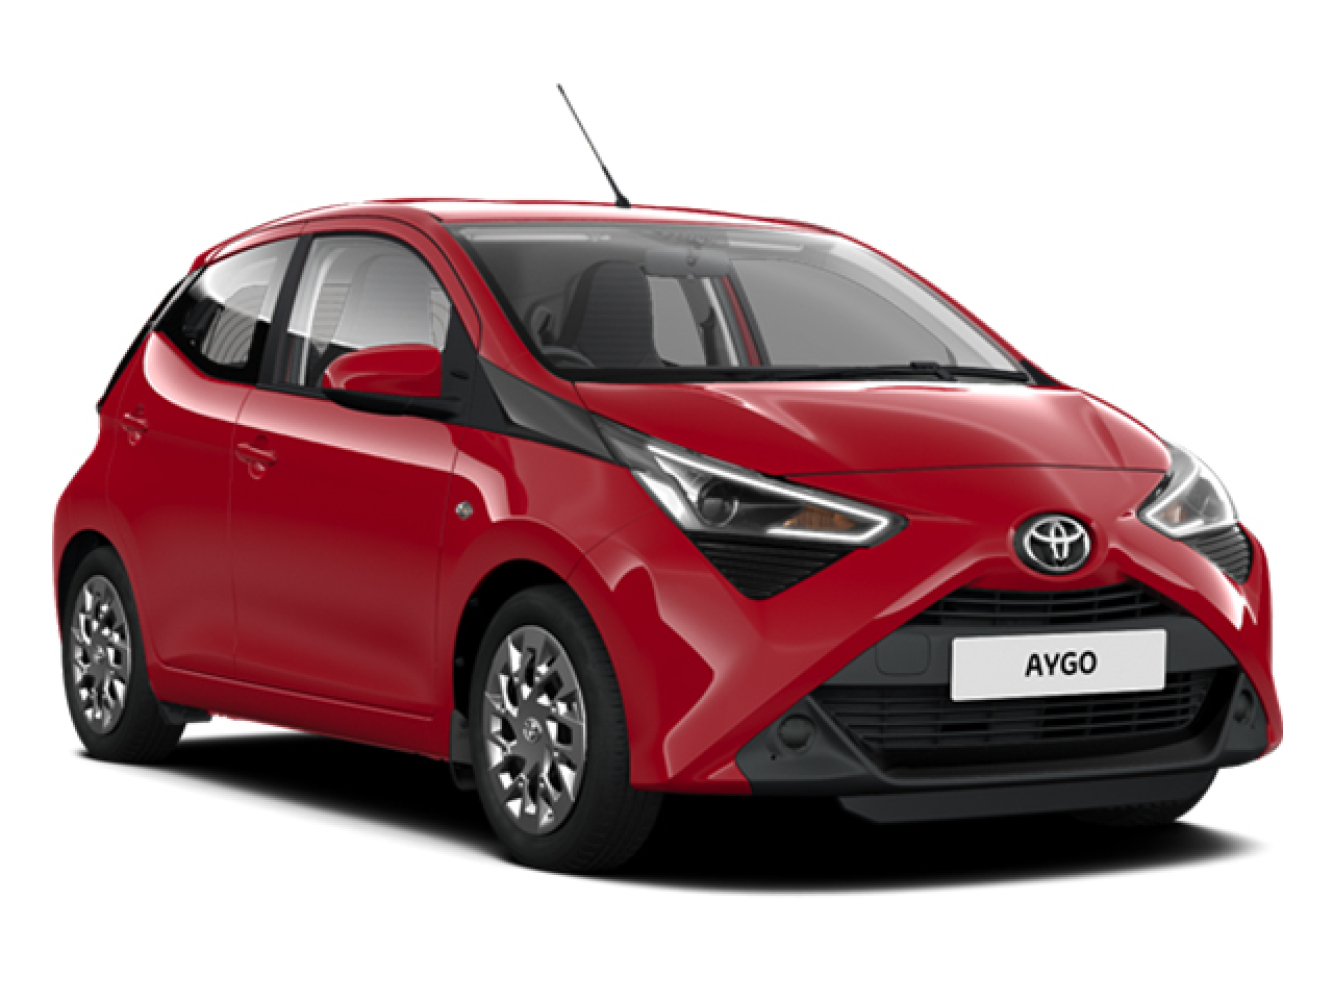 new toyota aygo 1 0 vvt i x play 5dr x nav petrol hatchback for sale bristol street. Black Bedroom Furniture Sets. Home Design Ideas